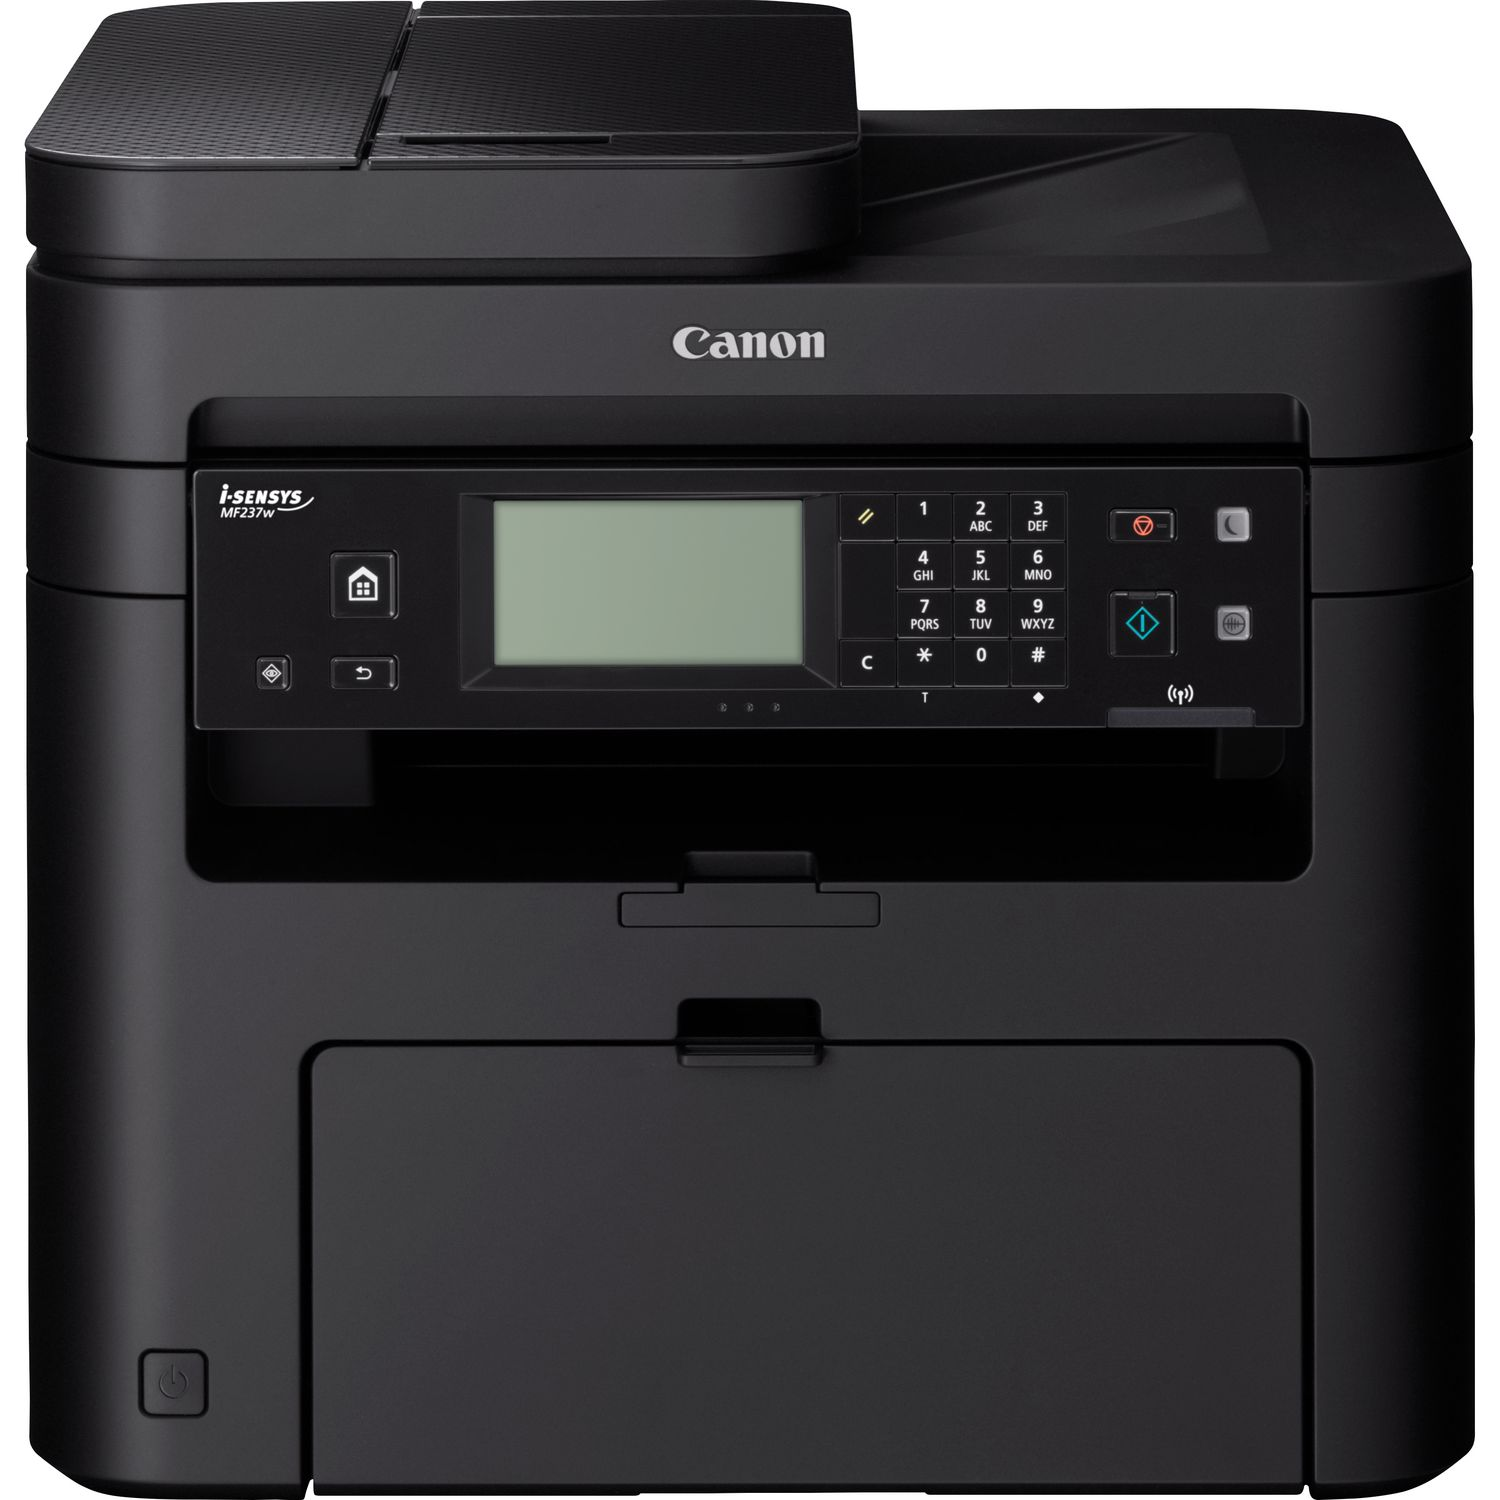 CANON MULTIF. LASER MF237W A4 B/N 23PPM 1200DPI ADF USB/ETHERNET/WIRELESS STAMPANTE SCANNER COPIATRICE FAX